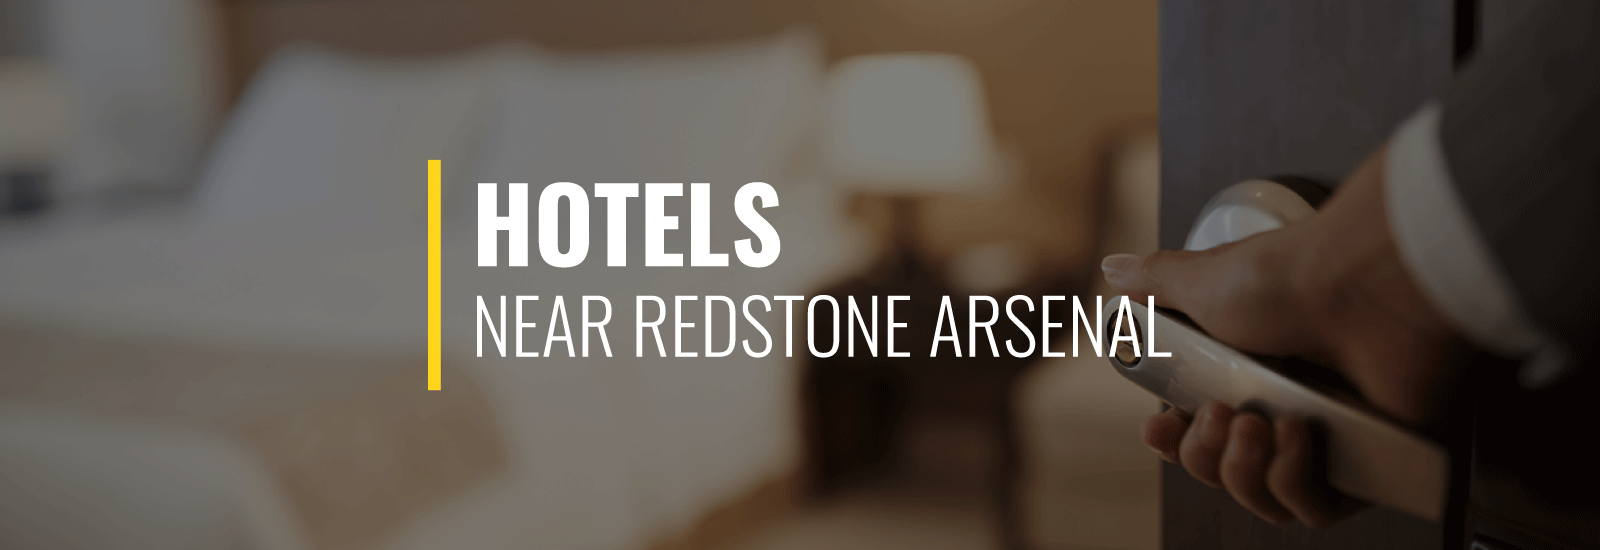 Redstone Arsenal Hotels